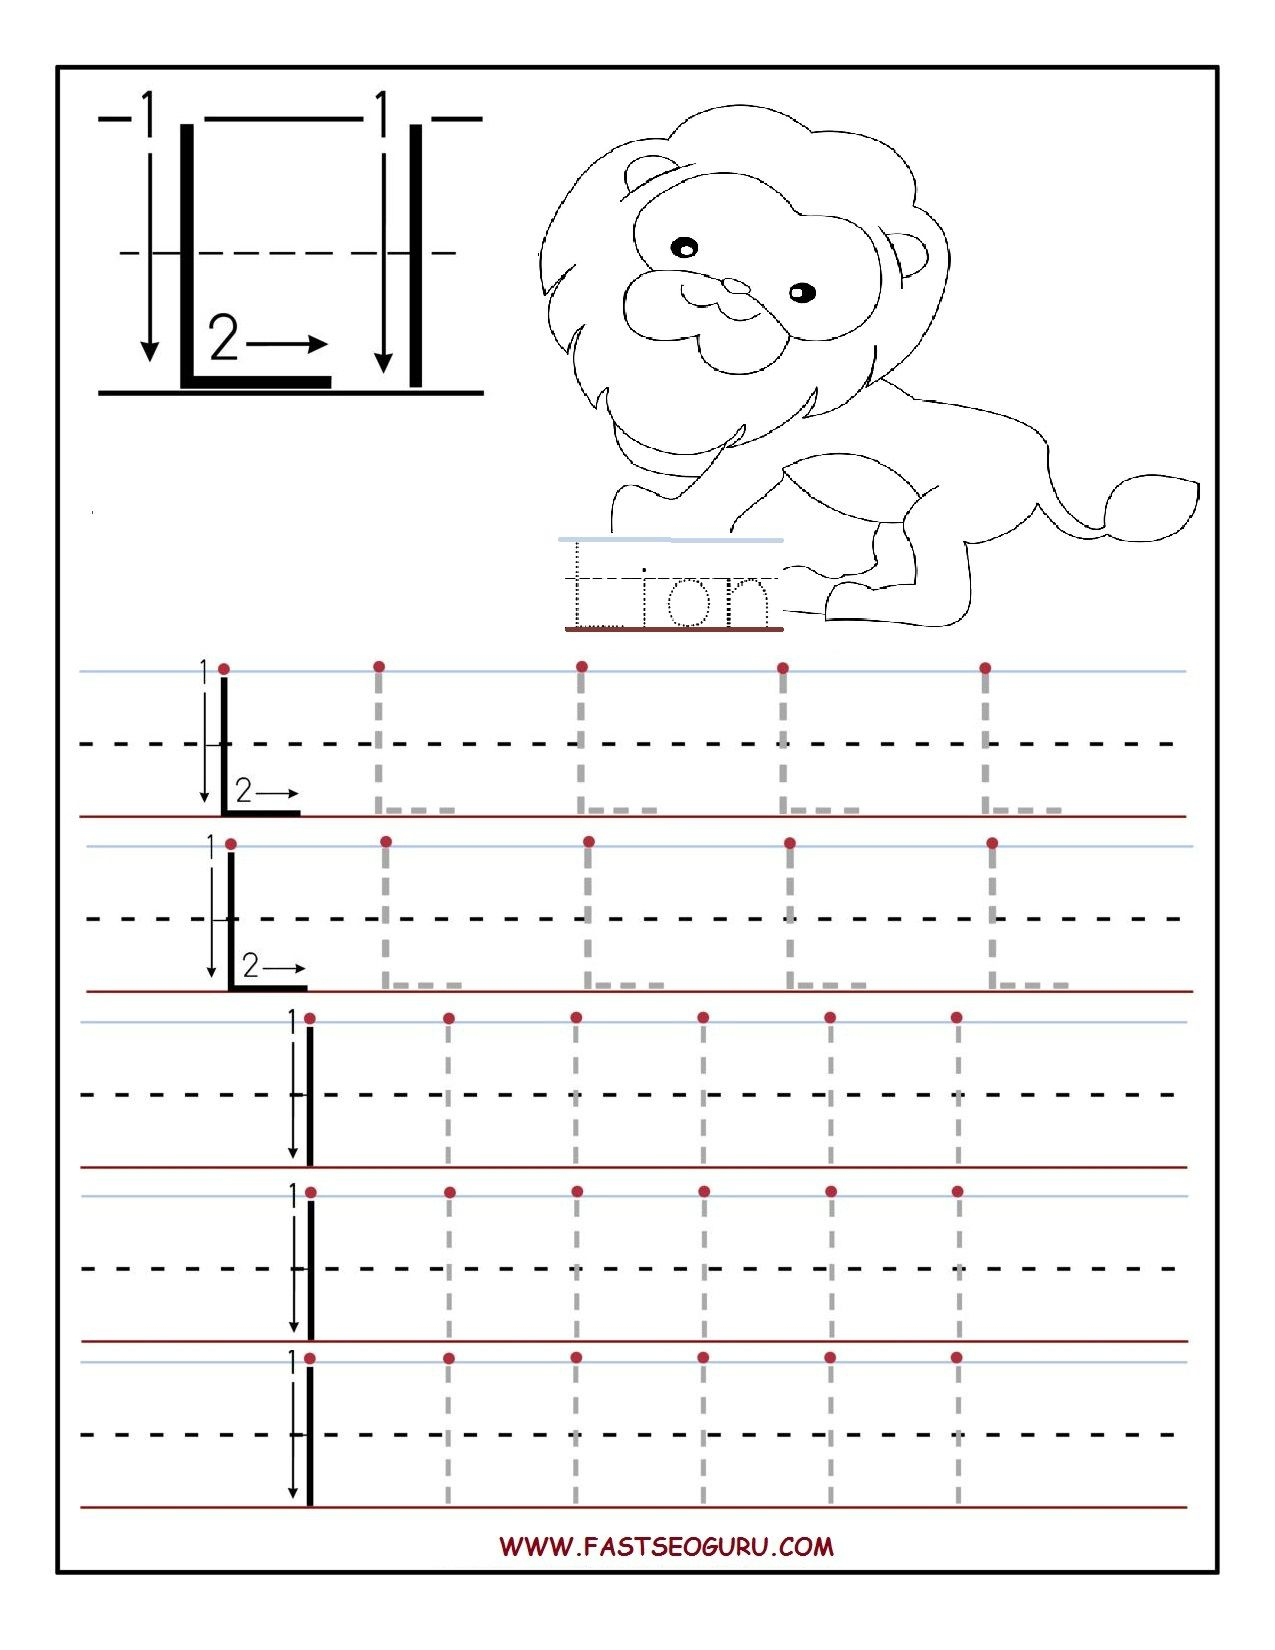 Pinvilfran Gason On Decor | Preschool Worksheets regarding Letter L Worksheets For Pre K